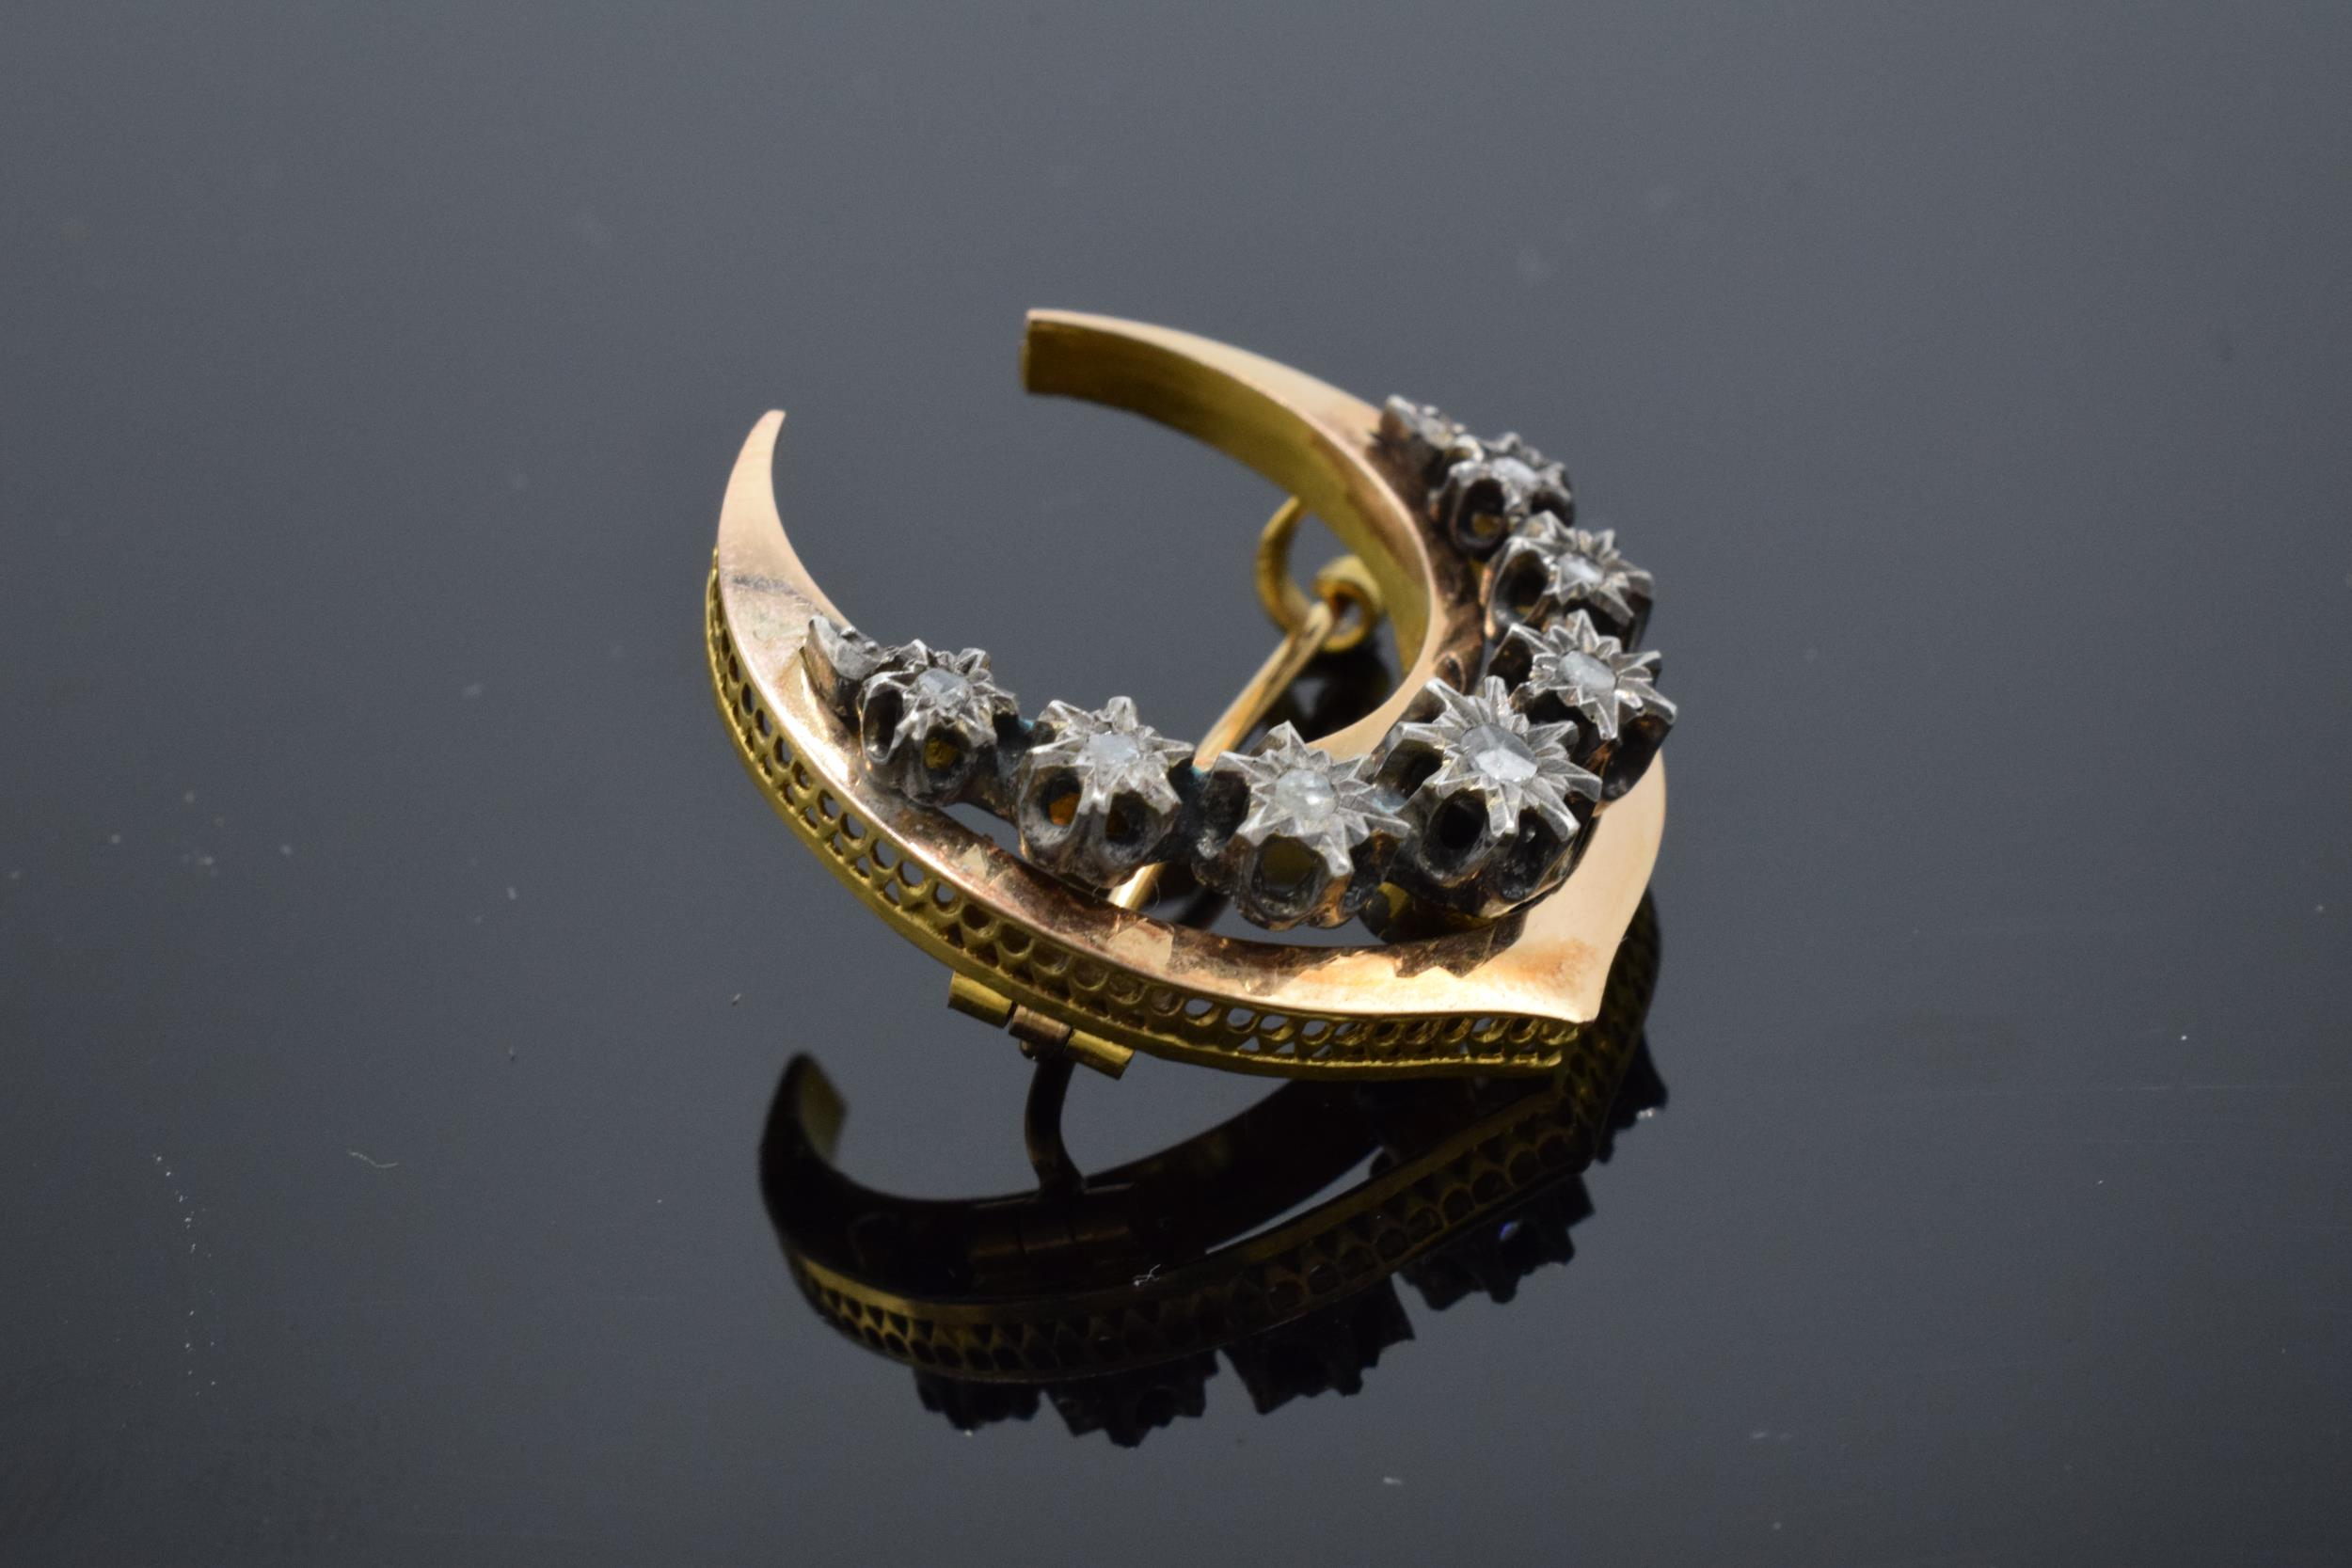 French 18ct gold and diamond chip crescent / half moon brooch. Total weight 4.9 grams. - Image 2 of 5